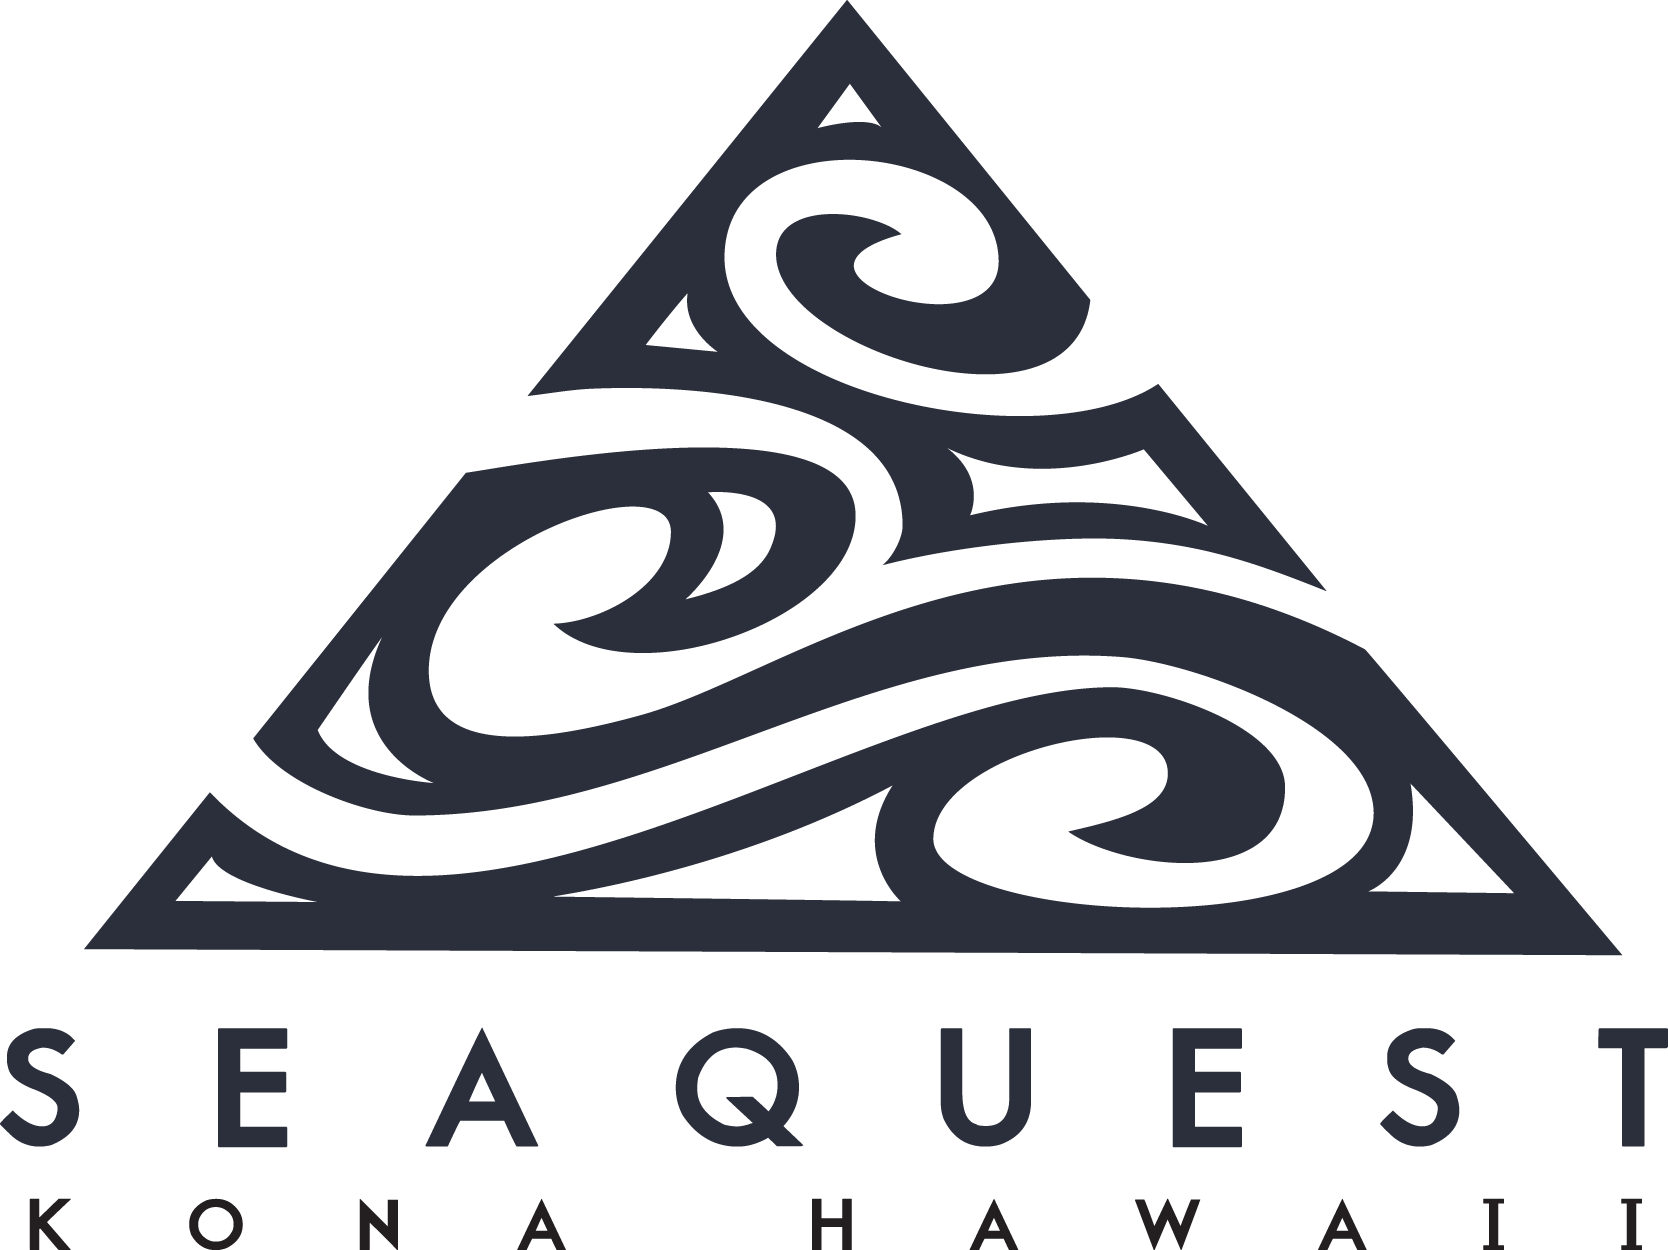 Sea Quest Hawaii